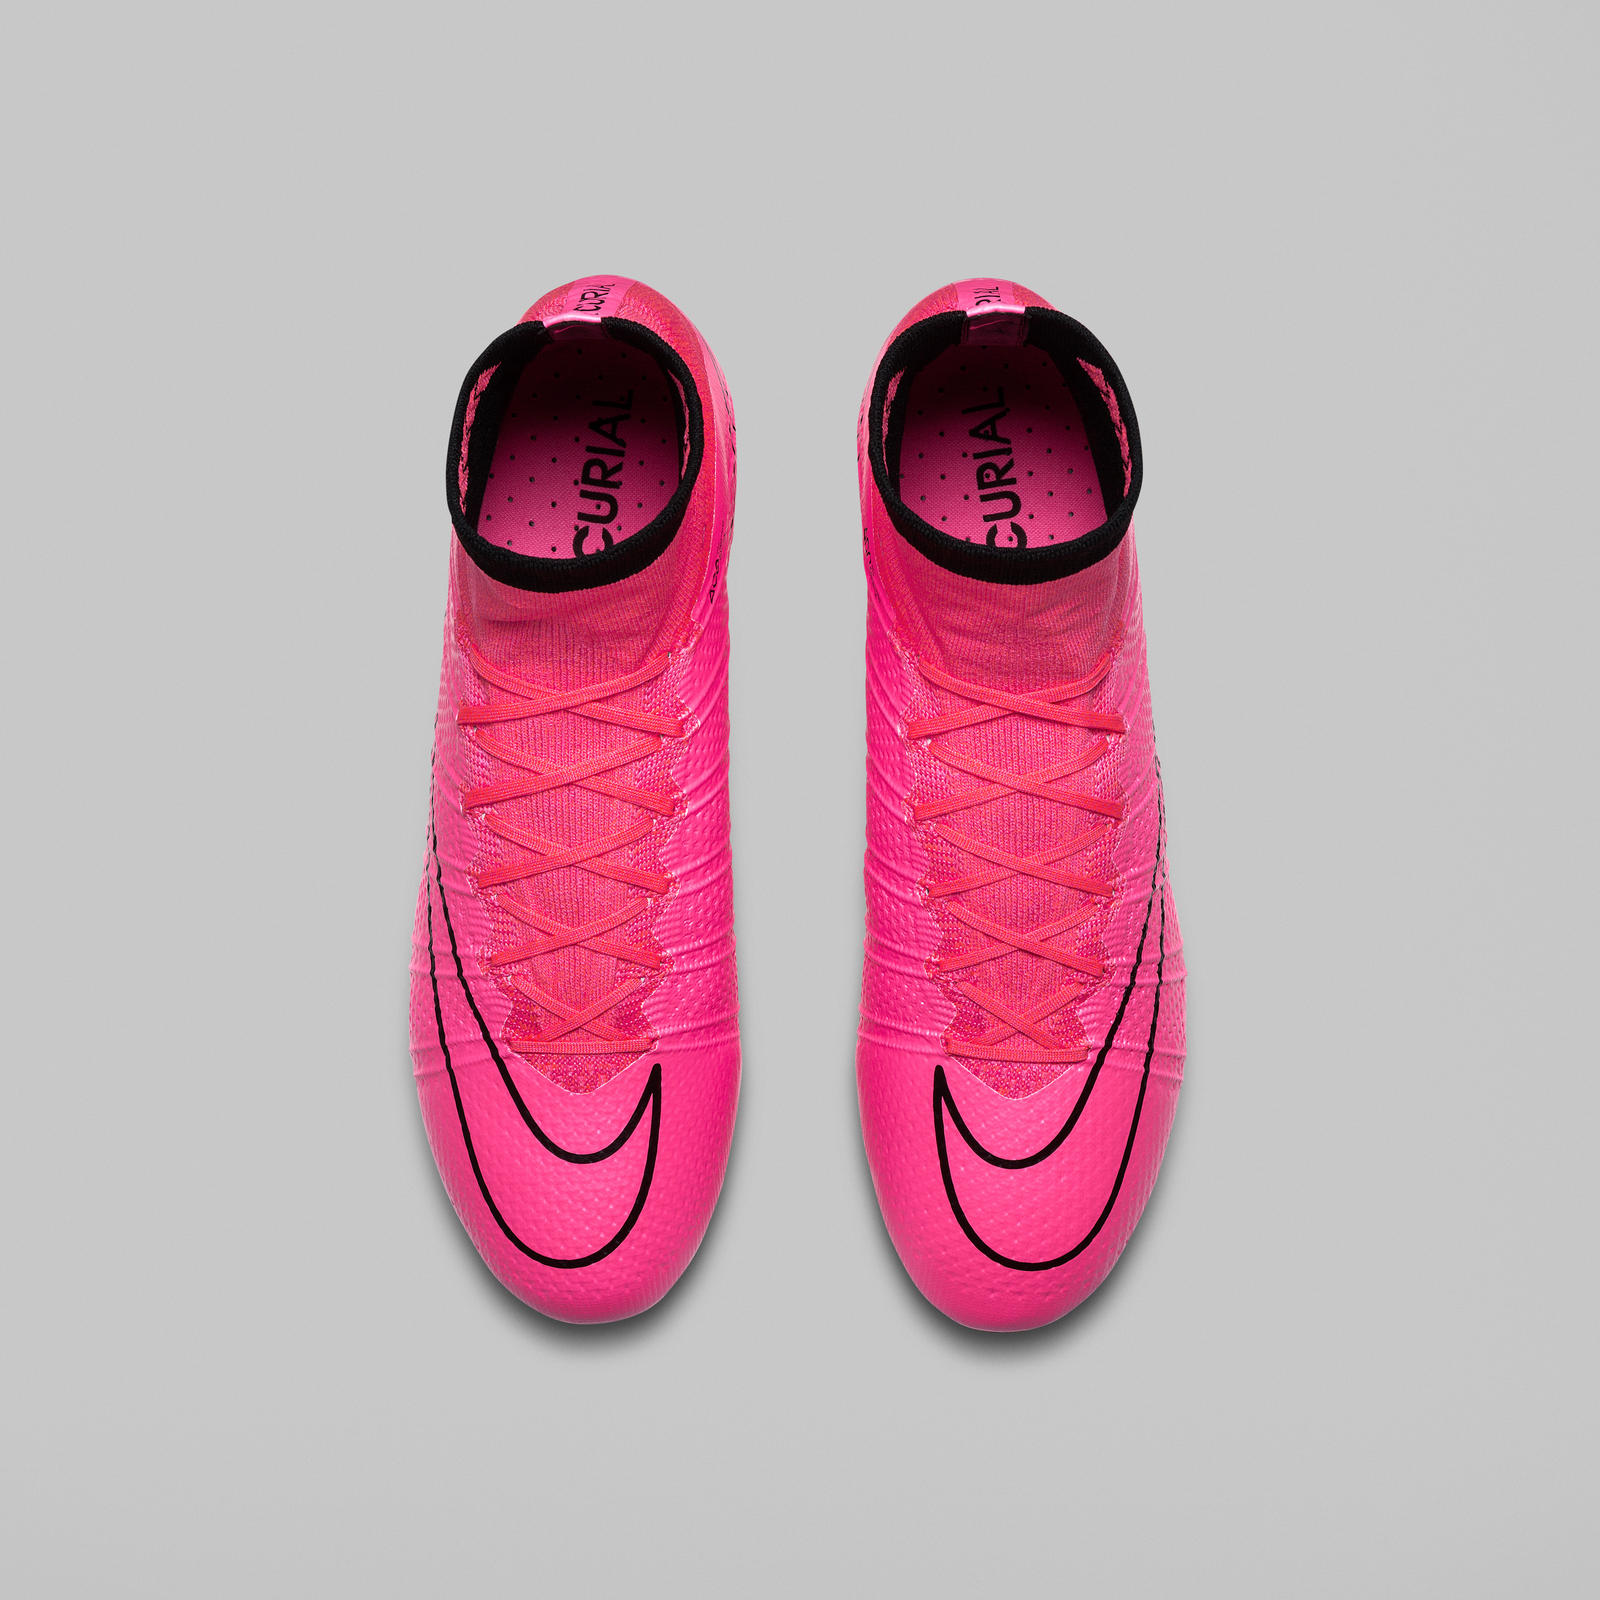 FA15_FB_FG_MercurialSuperfly_TopDown_Pink